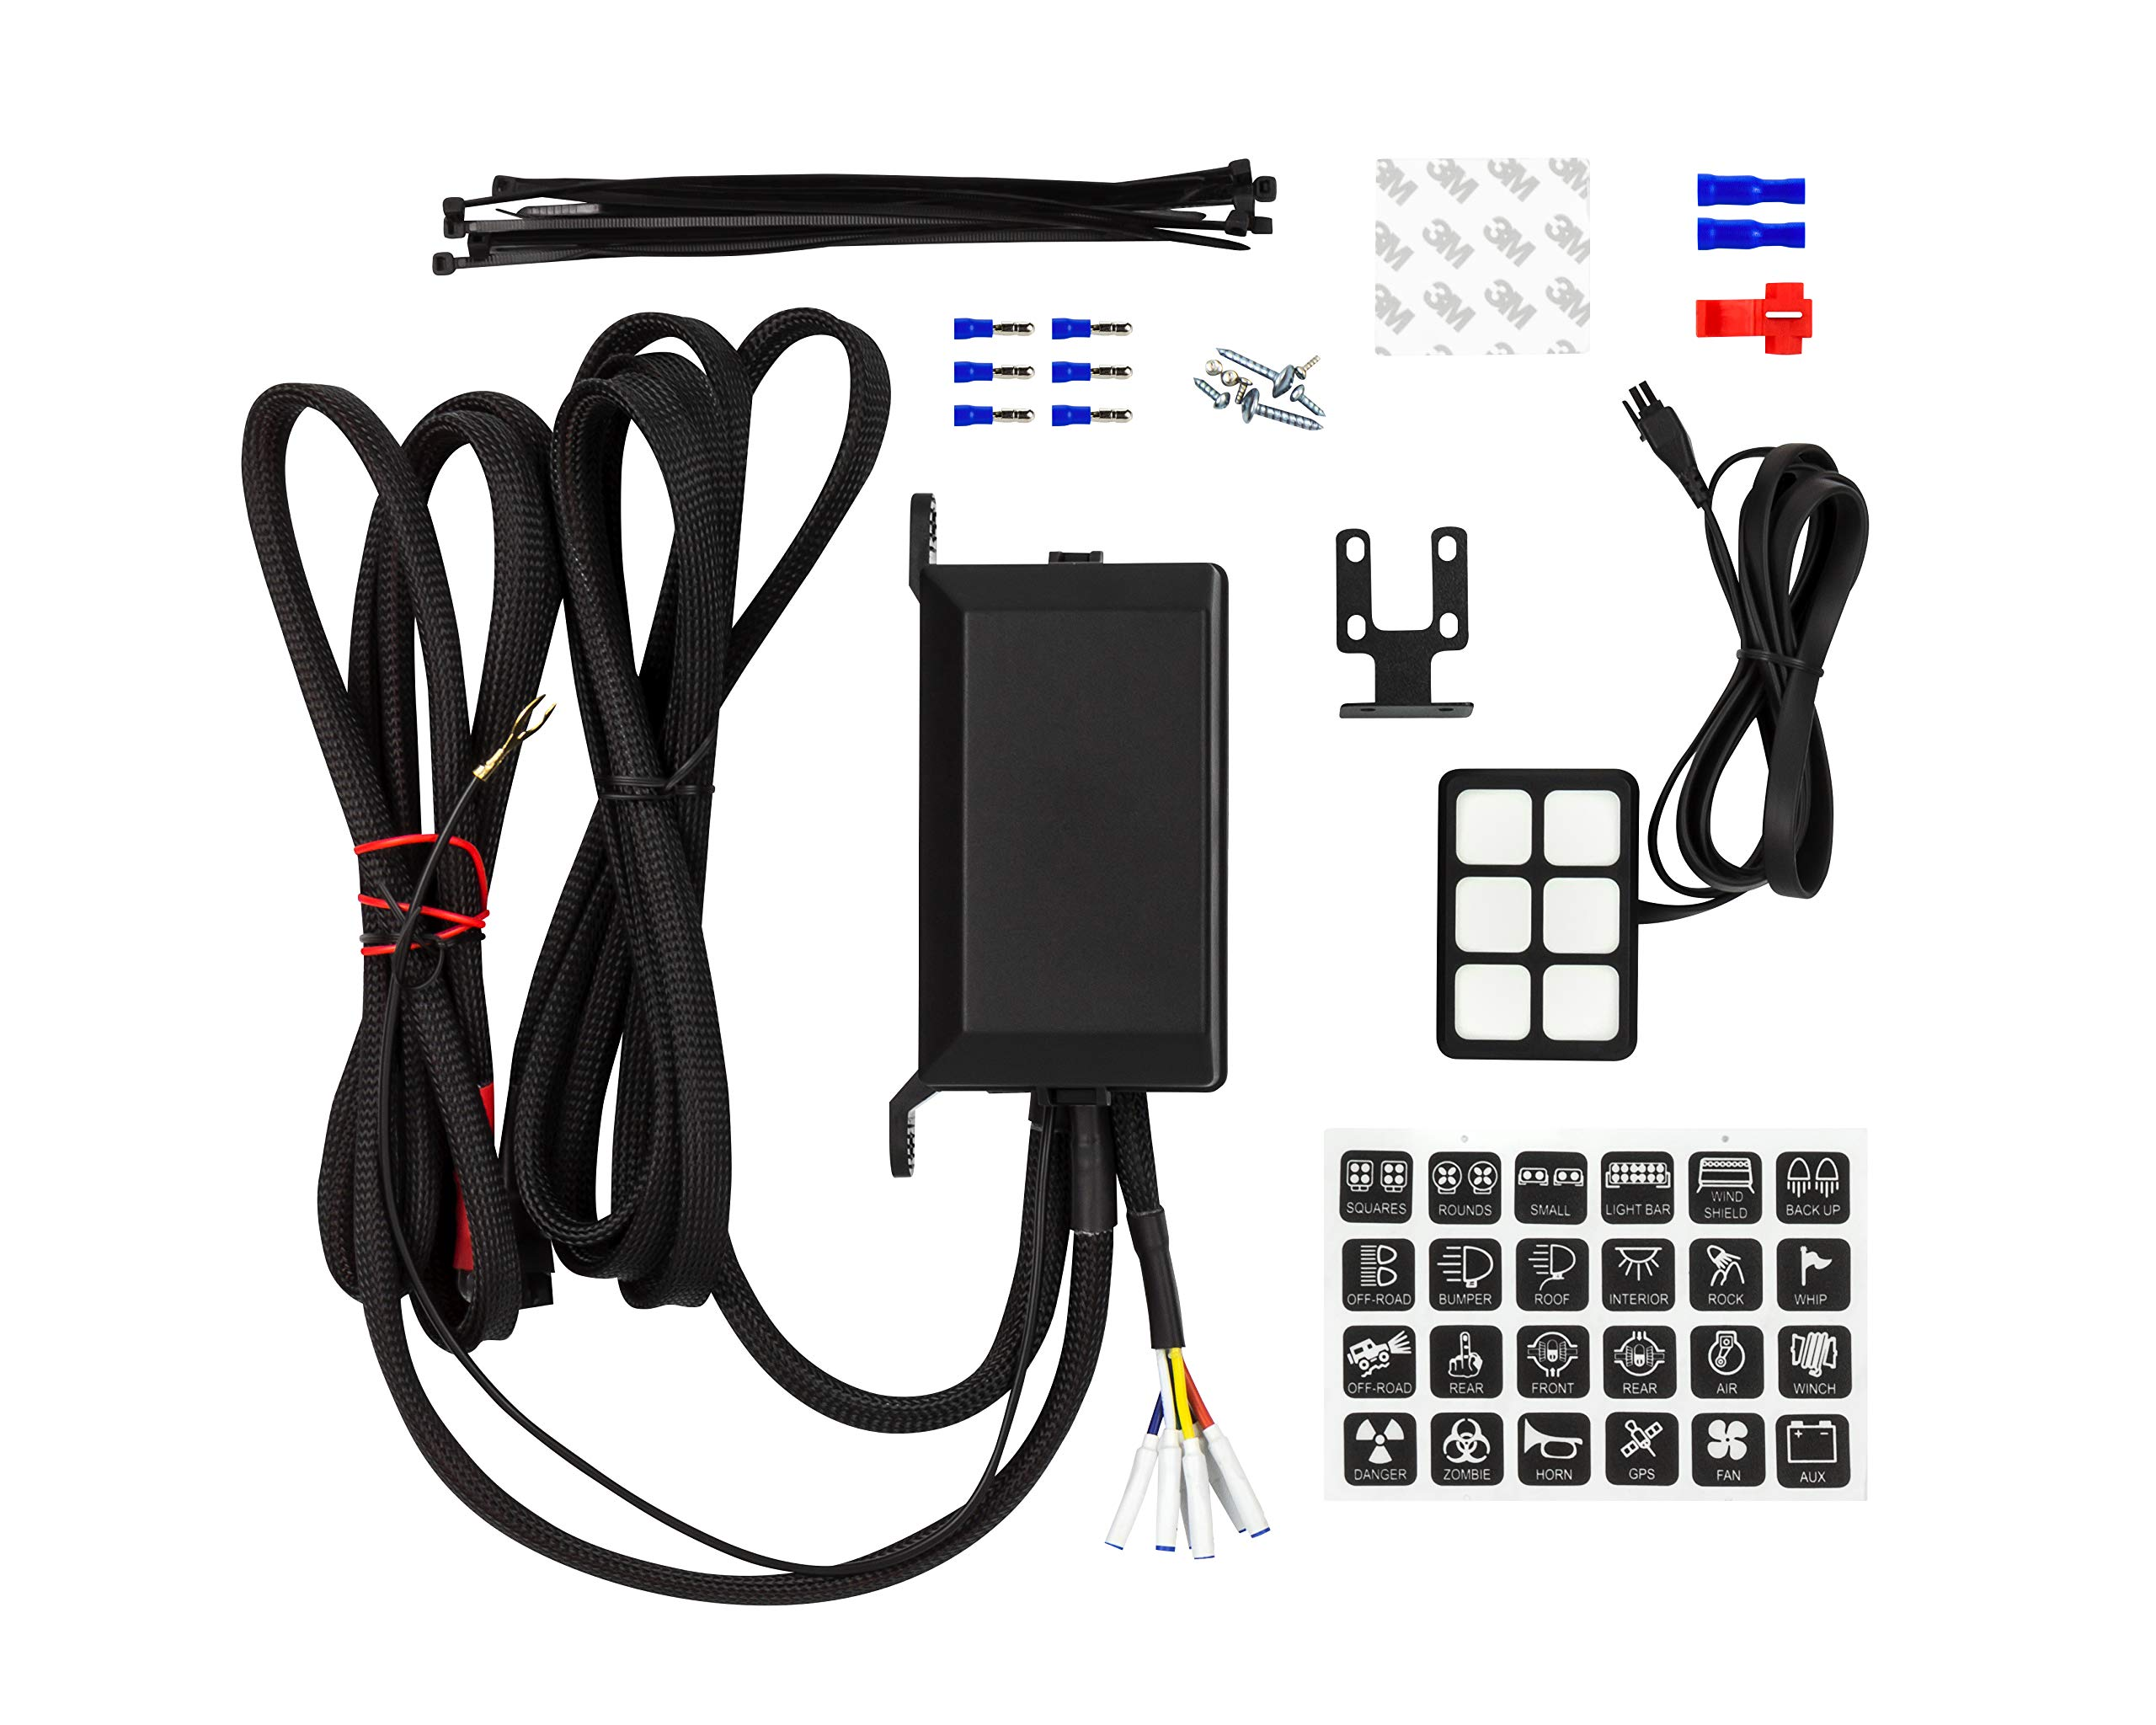 Bully AMA-300 Universal Accessory 6 Gang Switch Panel & 21.5'' LED Light Bar Kit by Bully